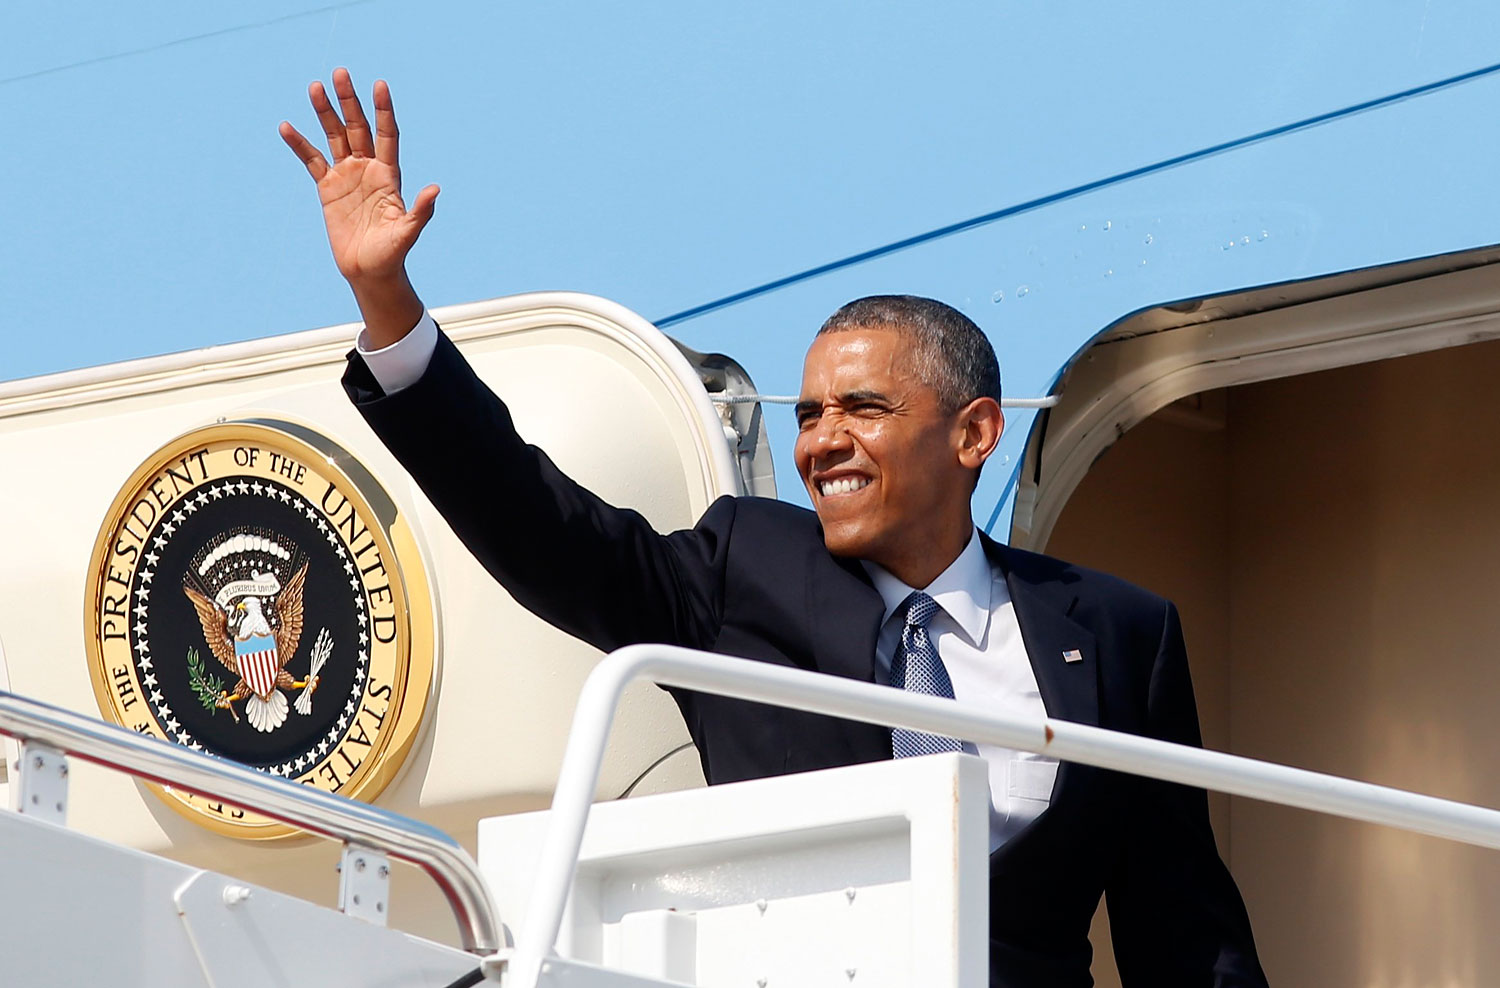 President Barack Obama waves from Air Force One as he departs Joint Base Andrews in Washington en route to Denver July 8, 2014. Obama will then travel to Texas on Wednesday and will meet Governor Rick Perry.